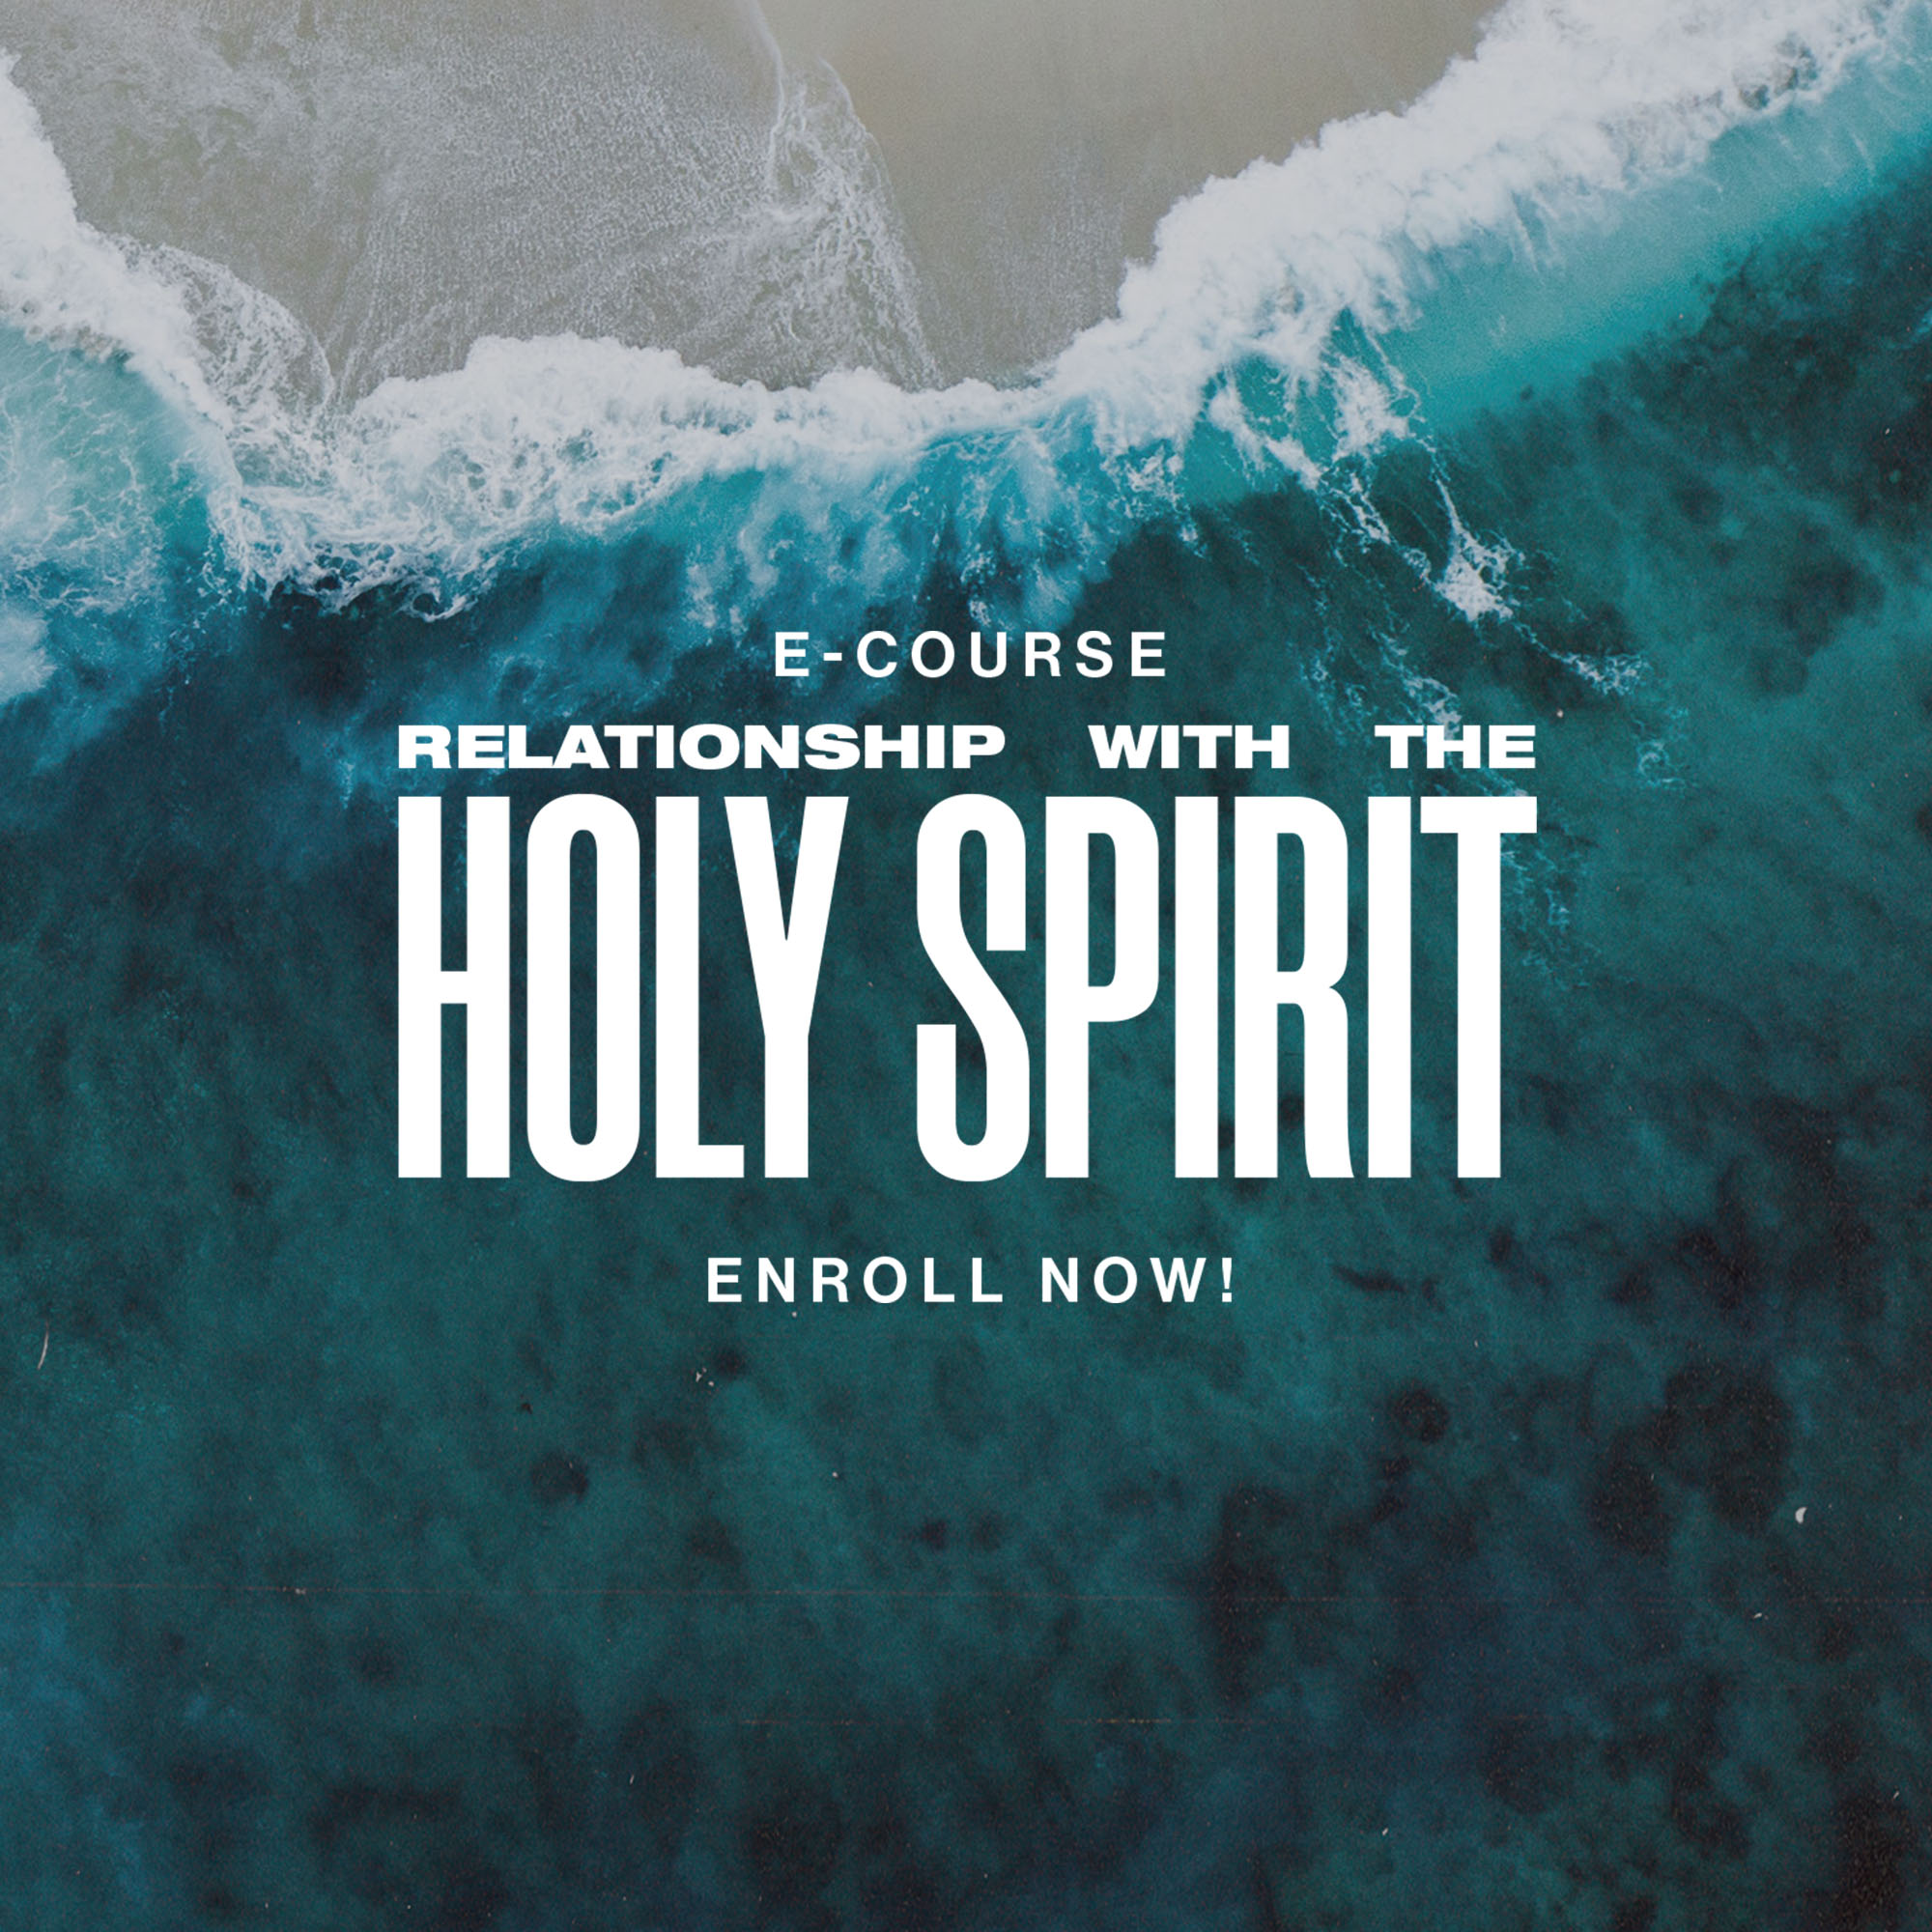 https://www.vladschool.com/courses/relationship-with-the-holy-spirit